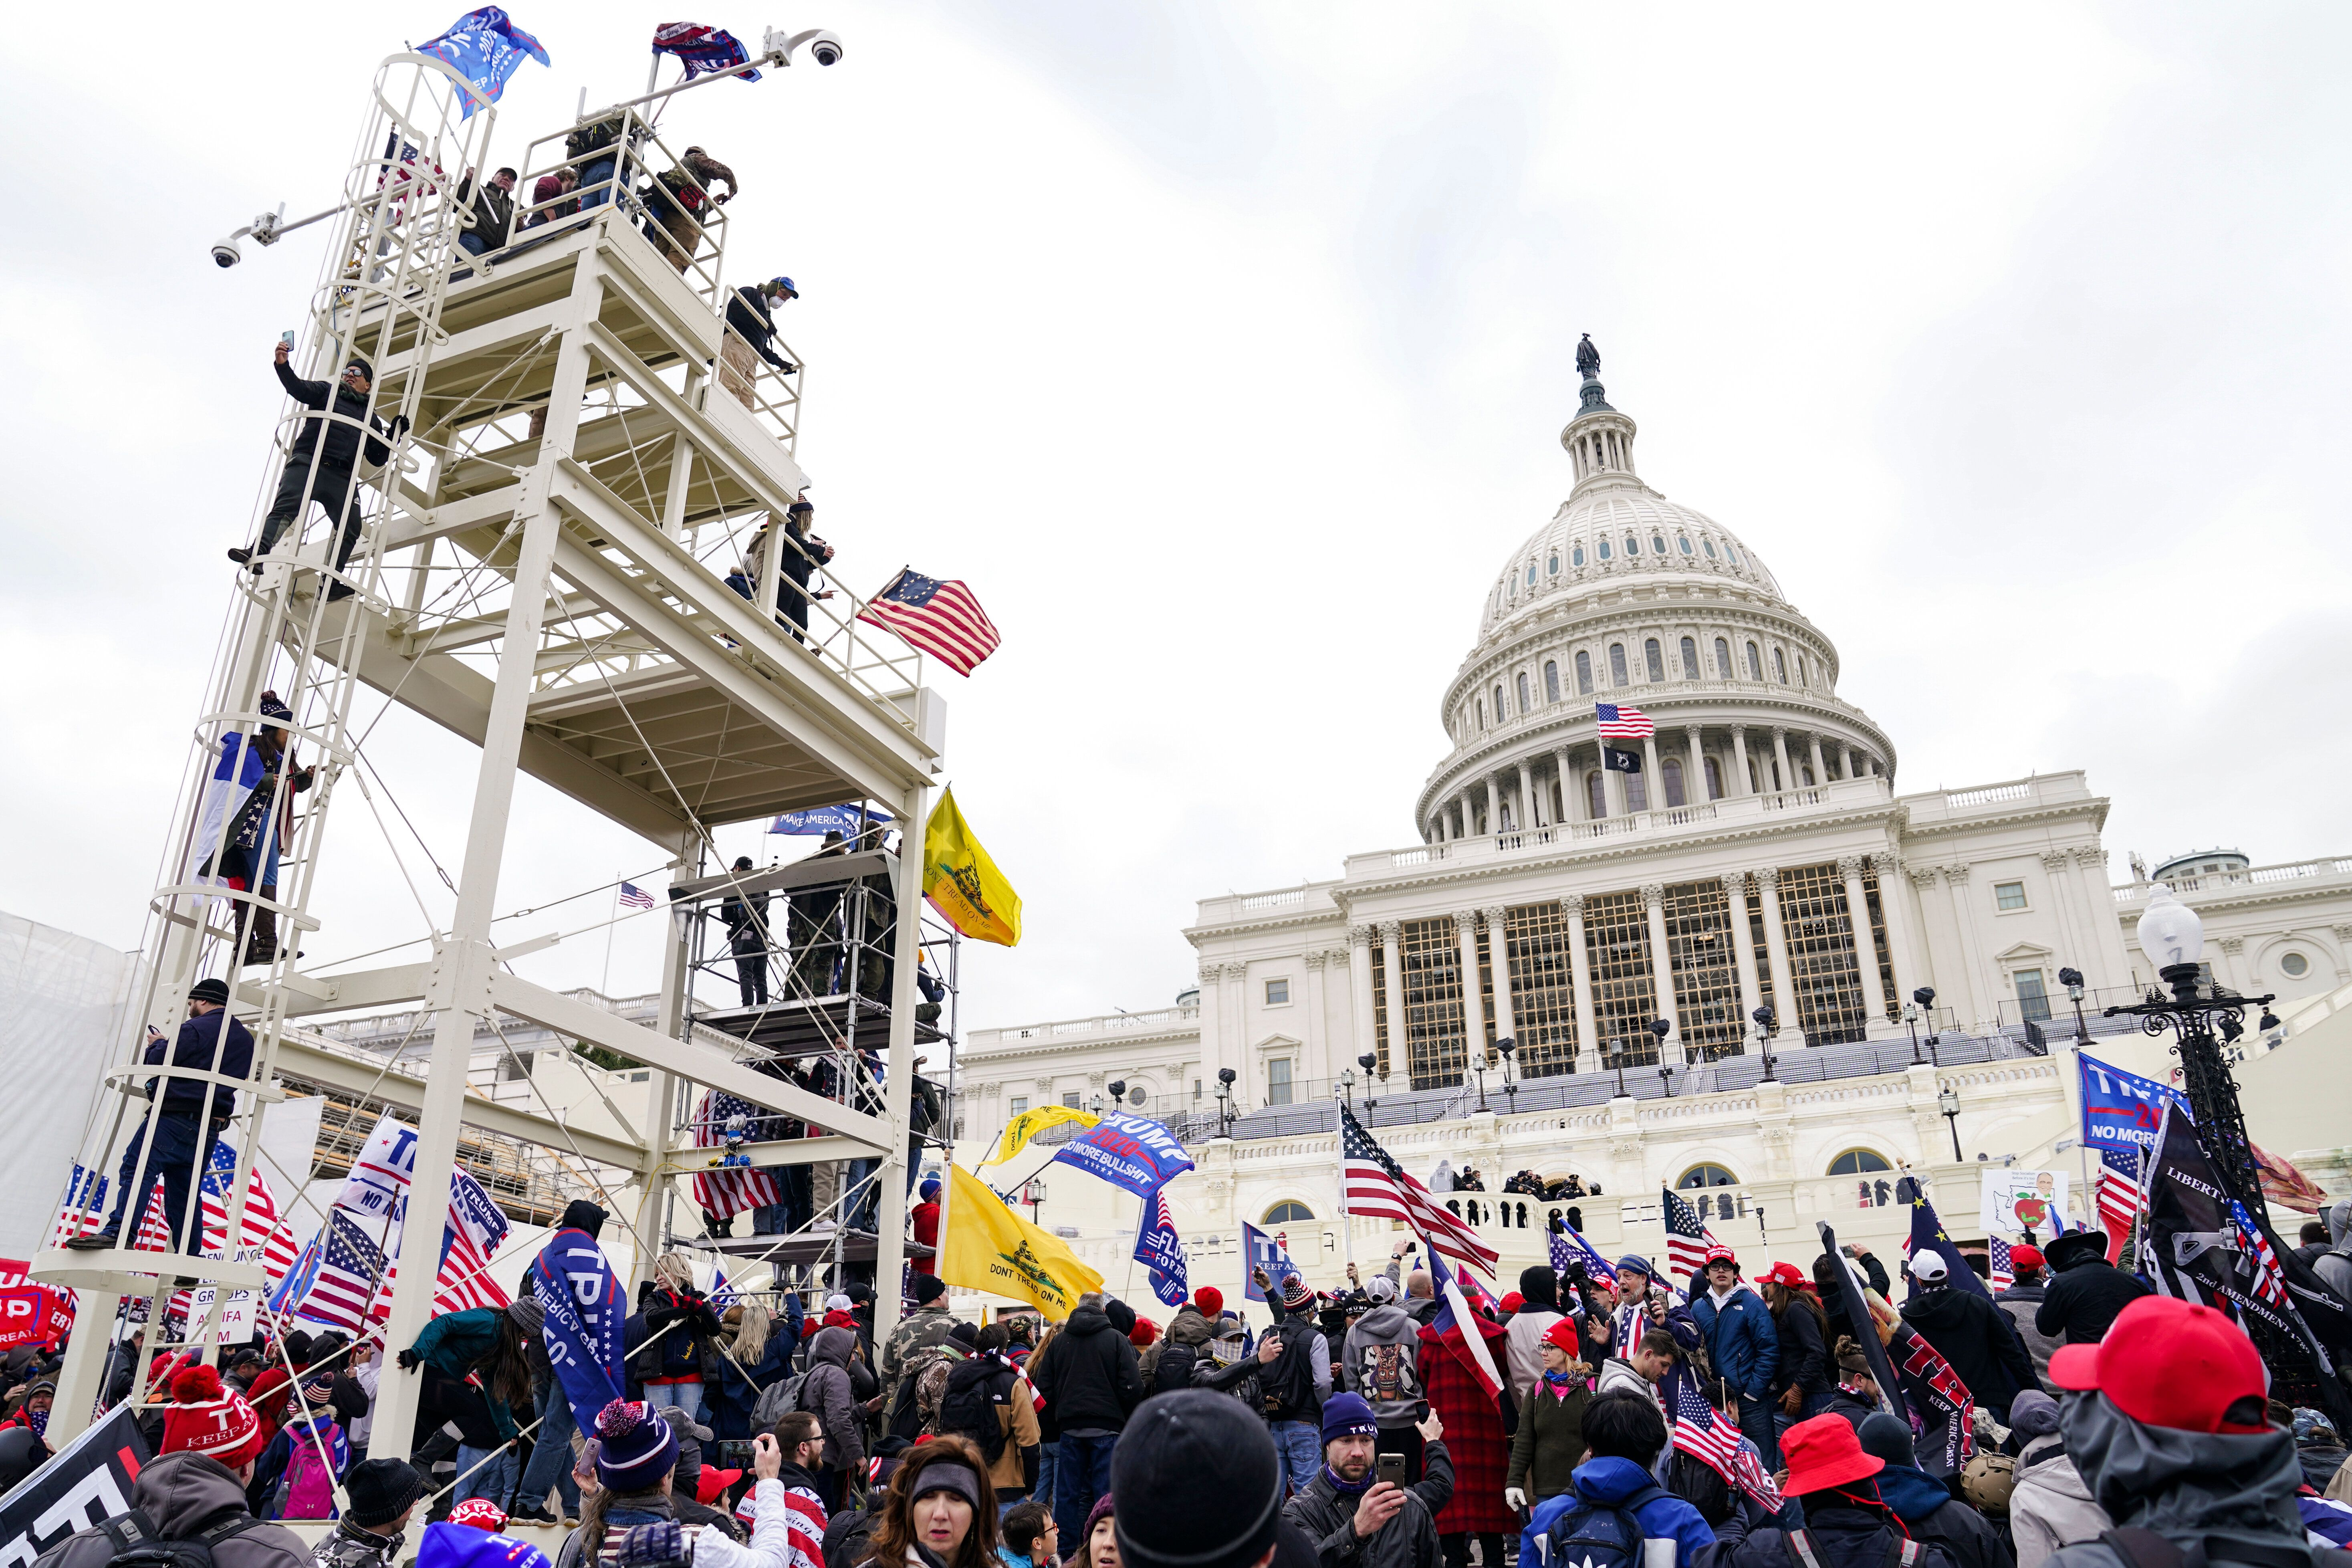 Even before rioters stormed the U.S. Capitol last week, the FBI had begun warning local authorities that violent outbreaks co